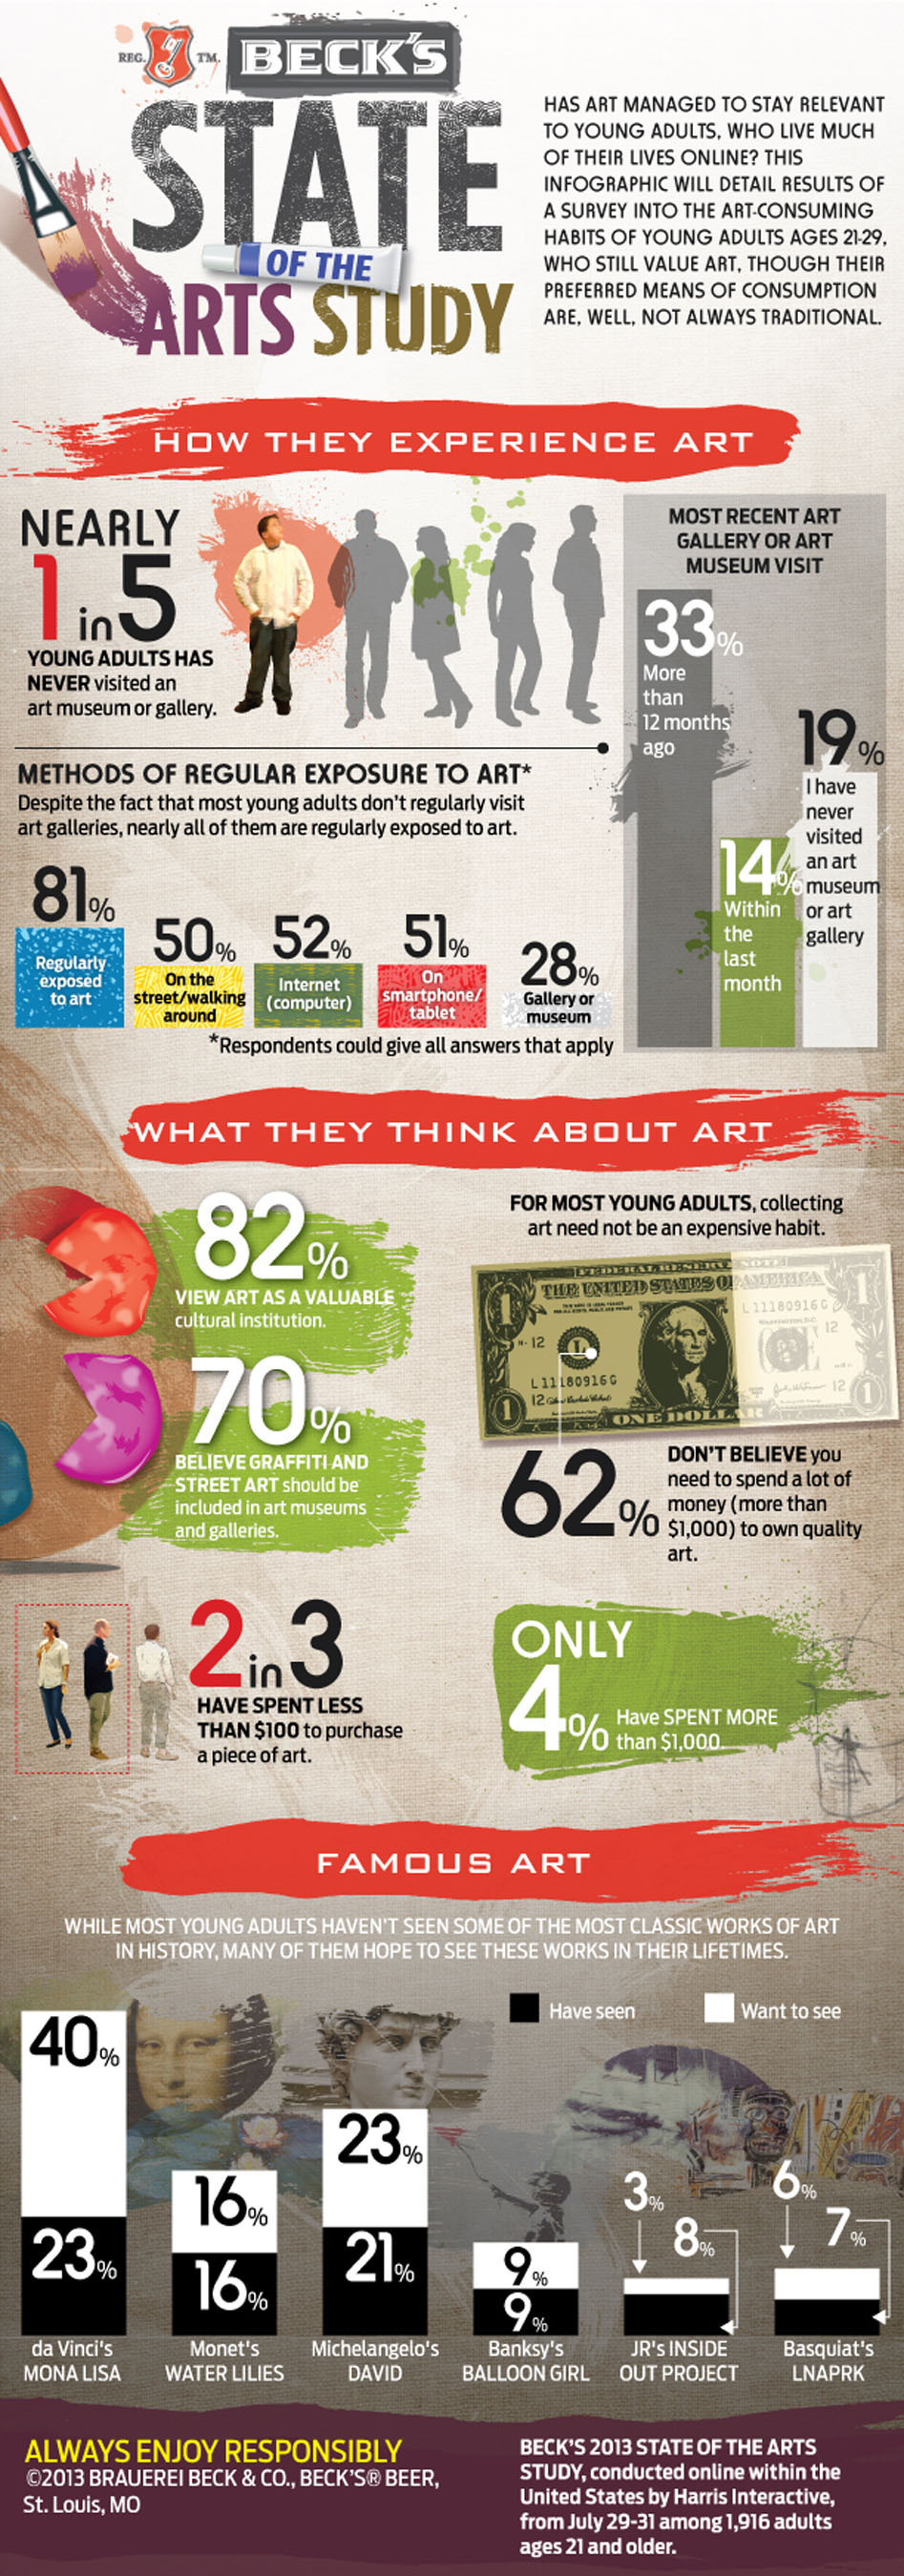 BECK'S BEER STATE OF THE ARTS INFOGRAPHIC